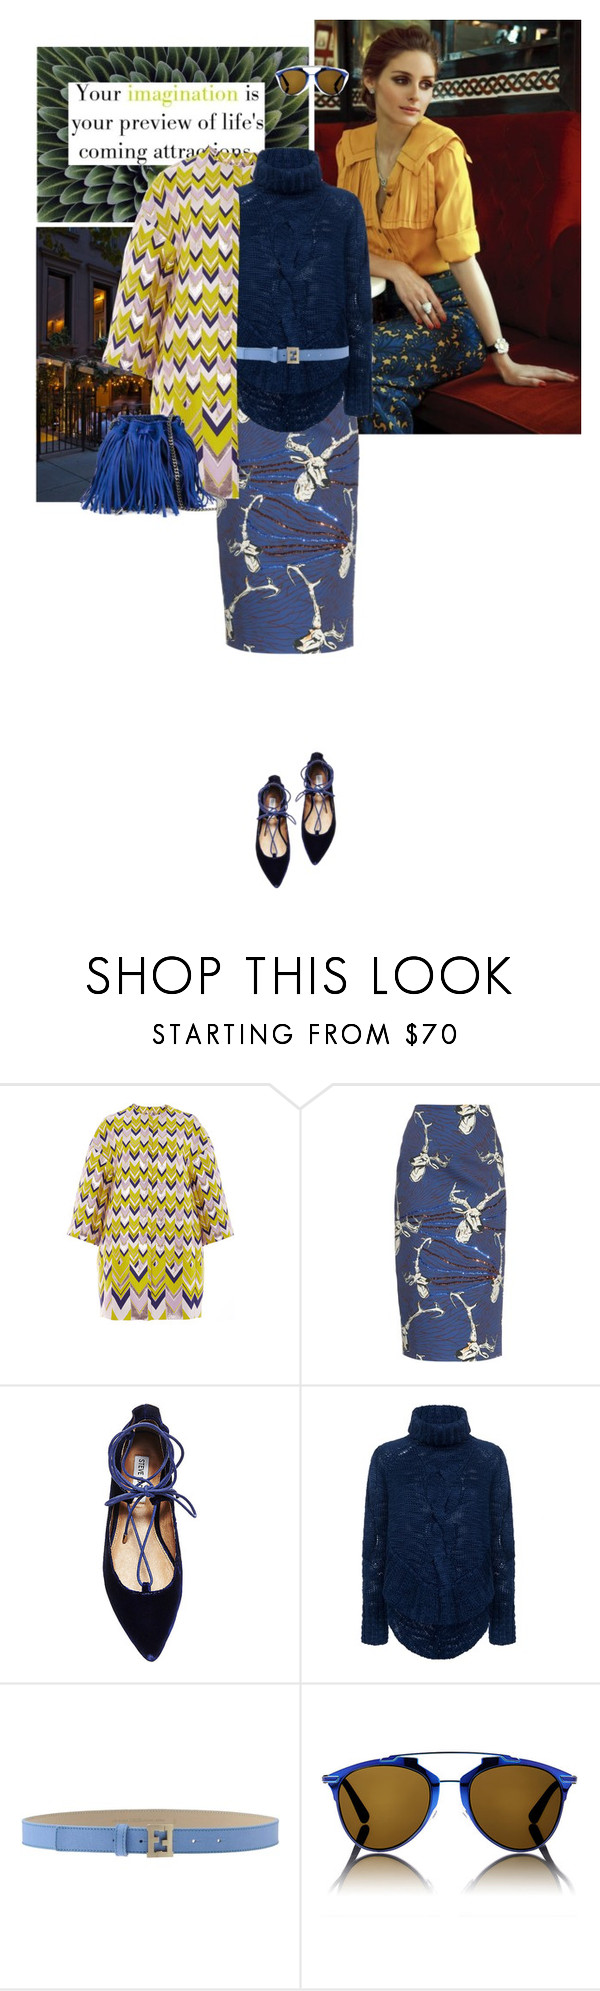 """""""Everything changes in the blink of an eye Its been a while. I still carry the flame I wanna know will I see you again? //Stardust - Mika (&Chiara)"""" by hil4ry ❤ liked on Polyvore featuring PLANT, Giambattista Valli, Stella Jean, Steve Madden, C/MEO COLLECTIVE, Fendi, Christian Dior, STELLA McCARTNEY, women's clothing and women's fashion"""